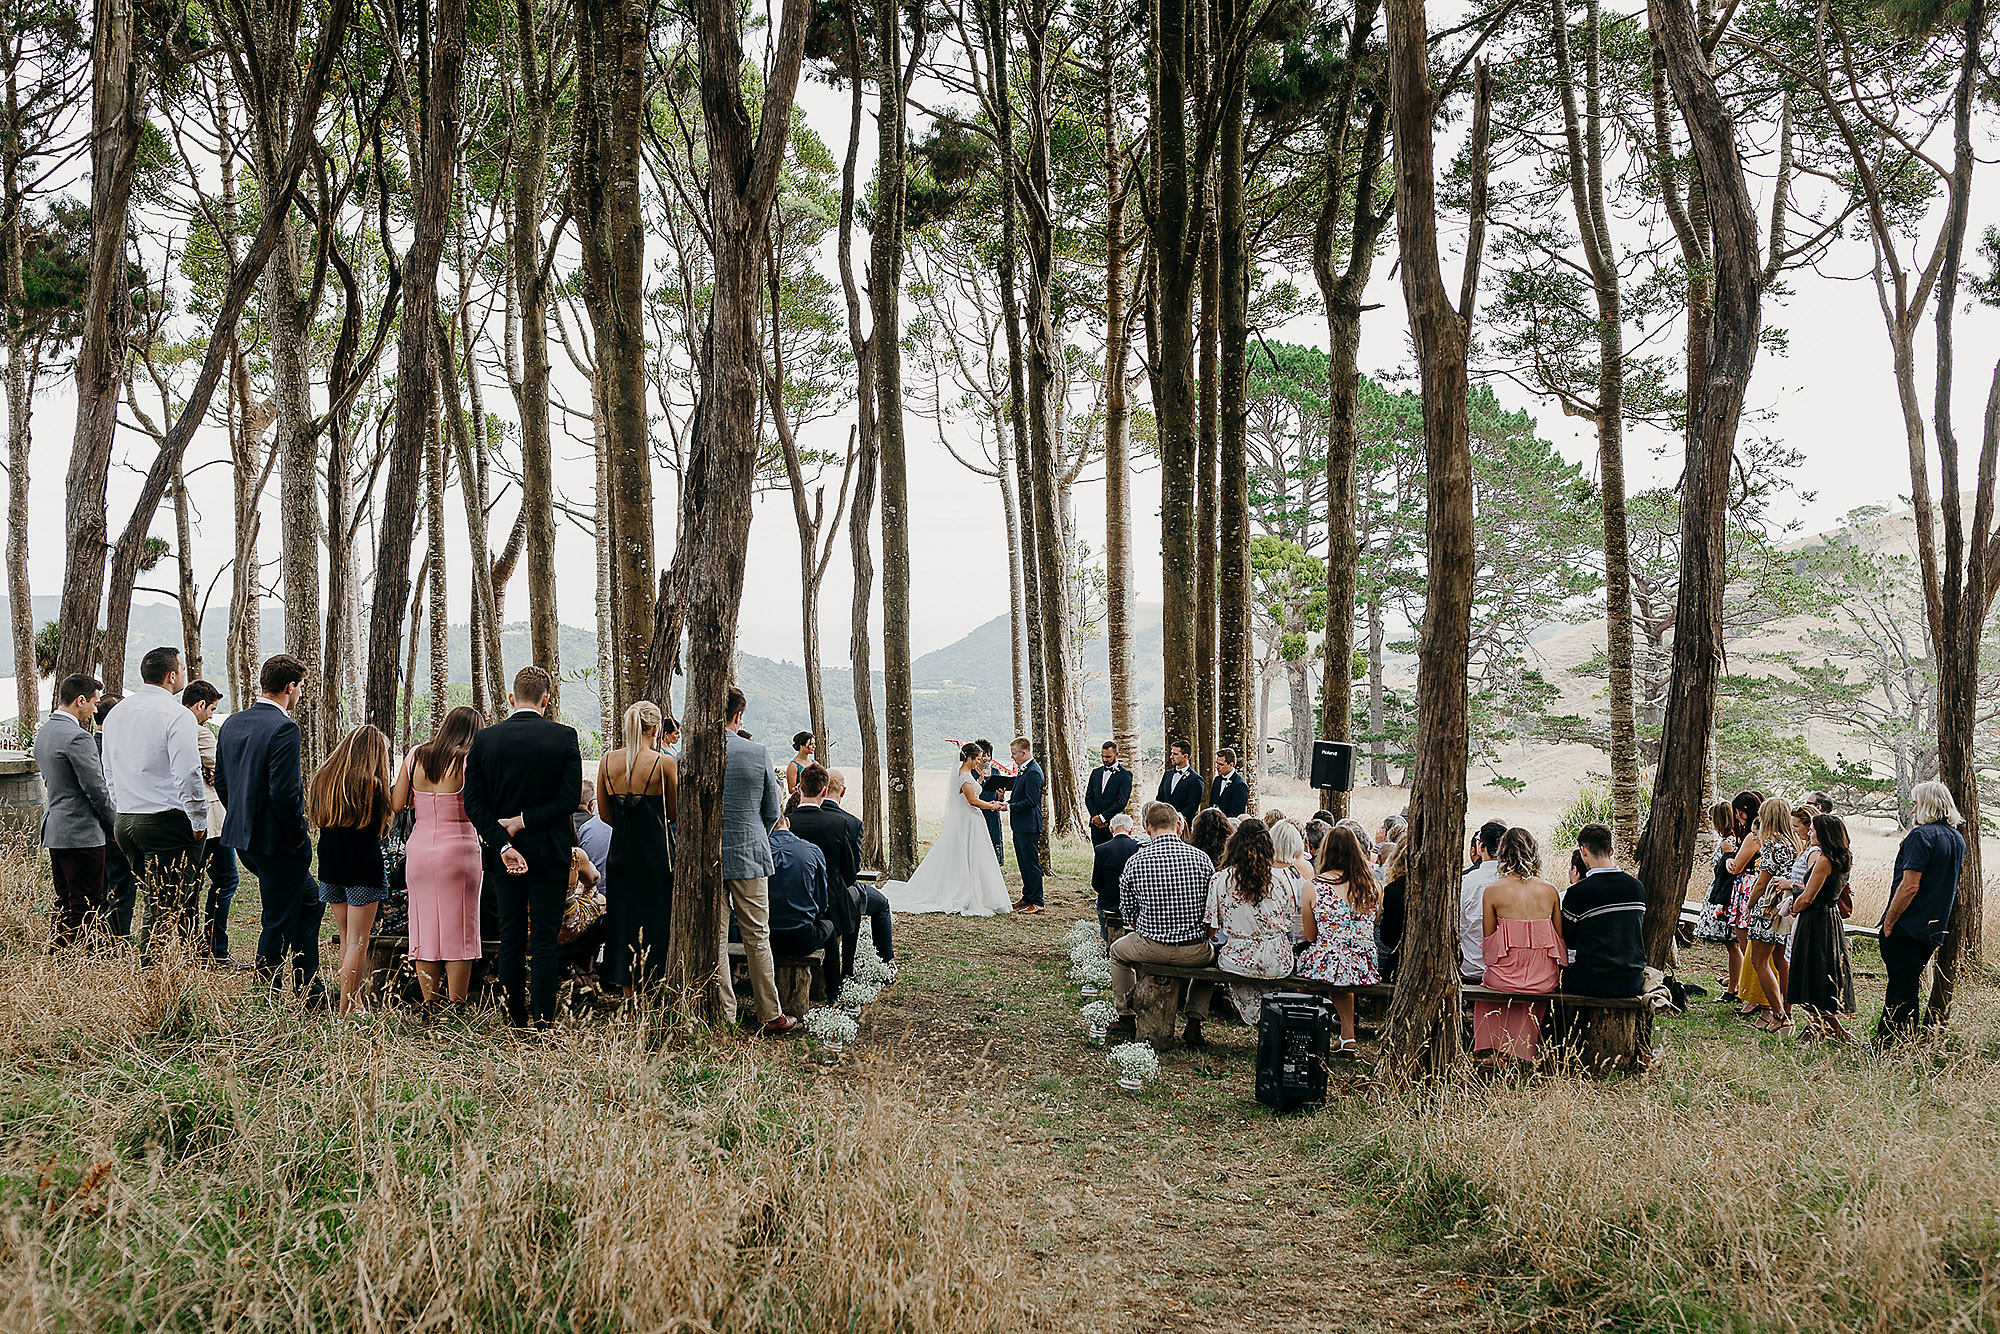 jonkers farm wedding ceremony in trees christchurch wedding photographer